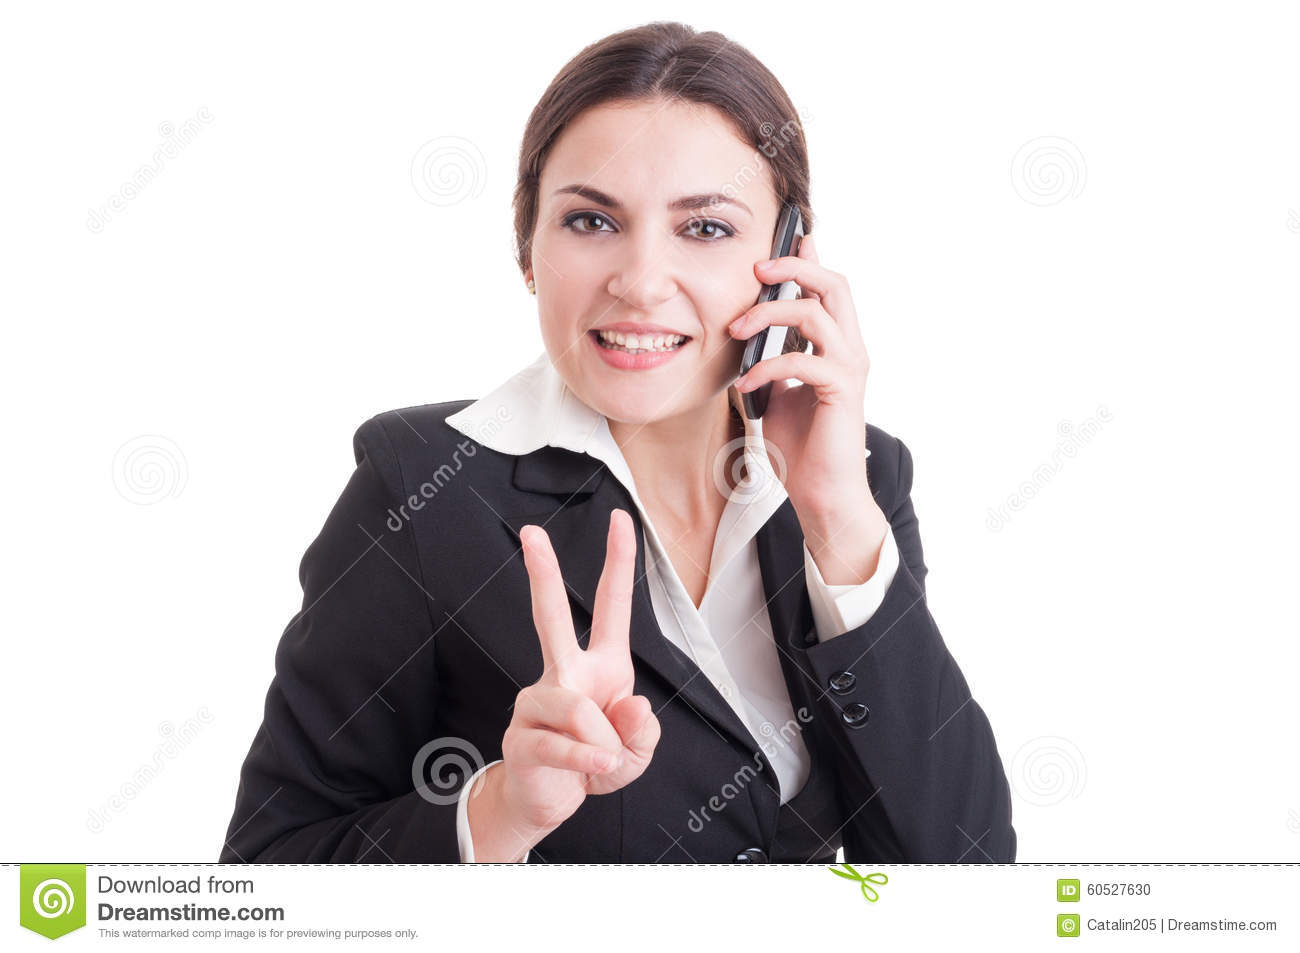 Smiling happy business woman showing victory or peace gesture